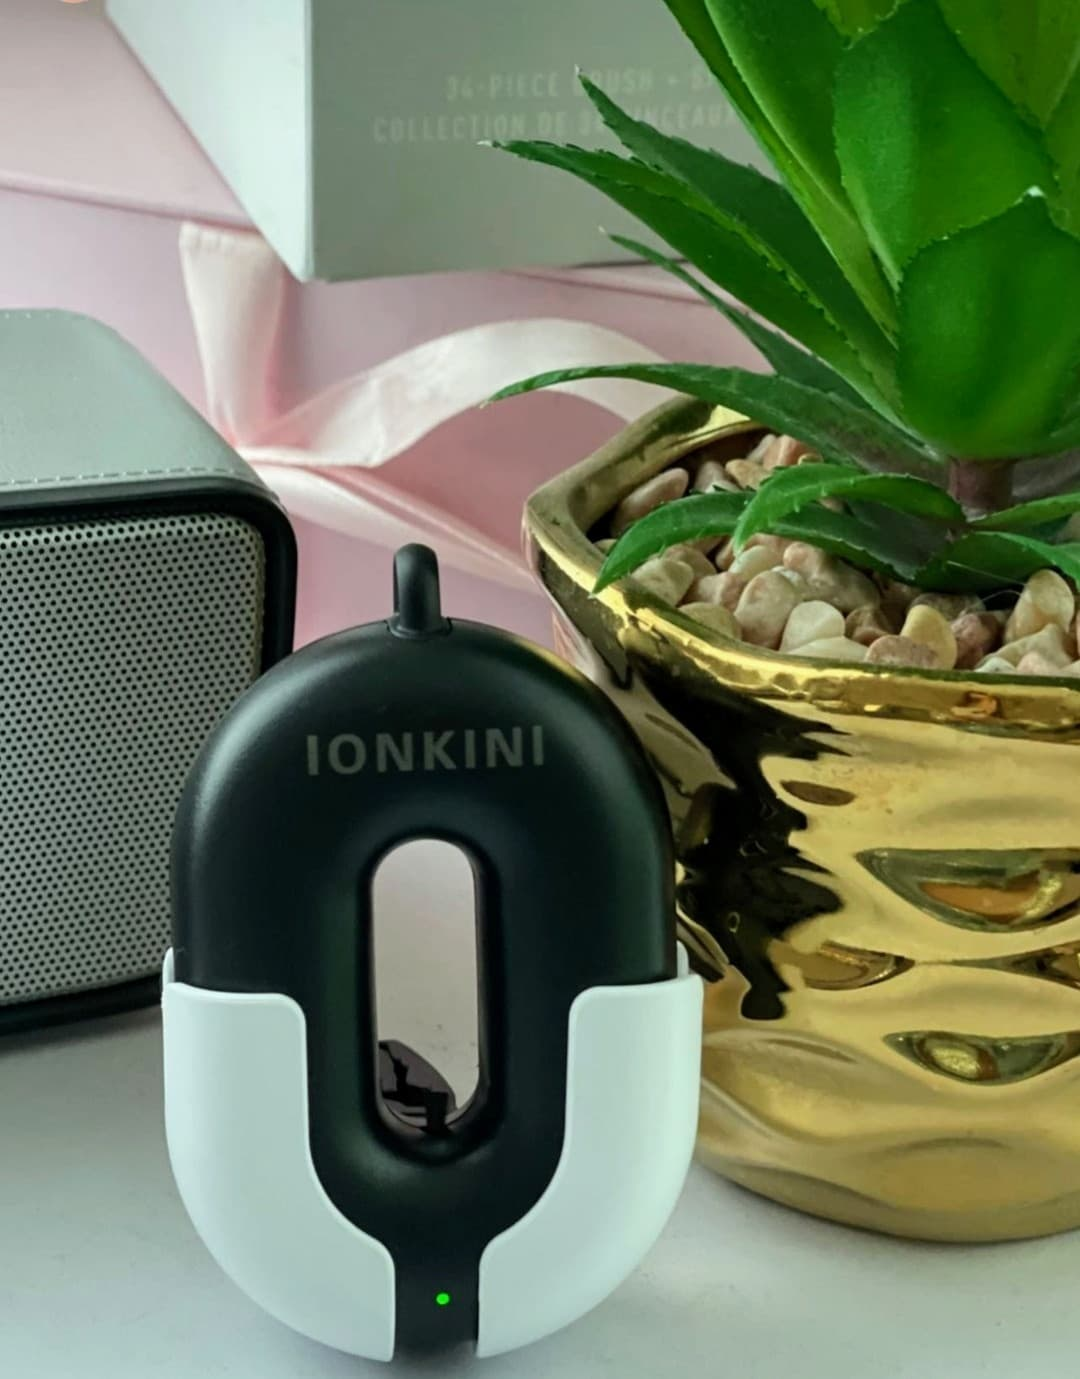 IONKINI PORTABLE /WEARABLE AIR PURIFIER  JO-2001